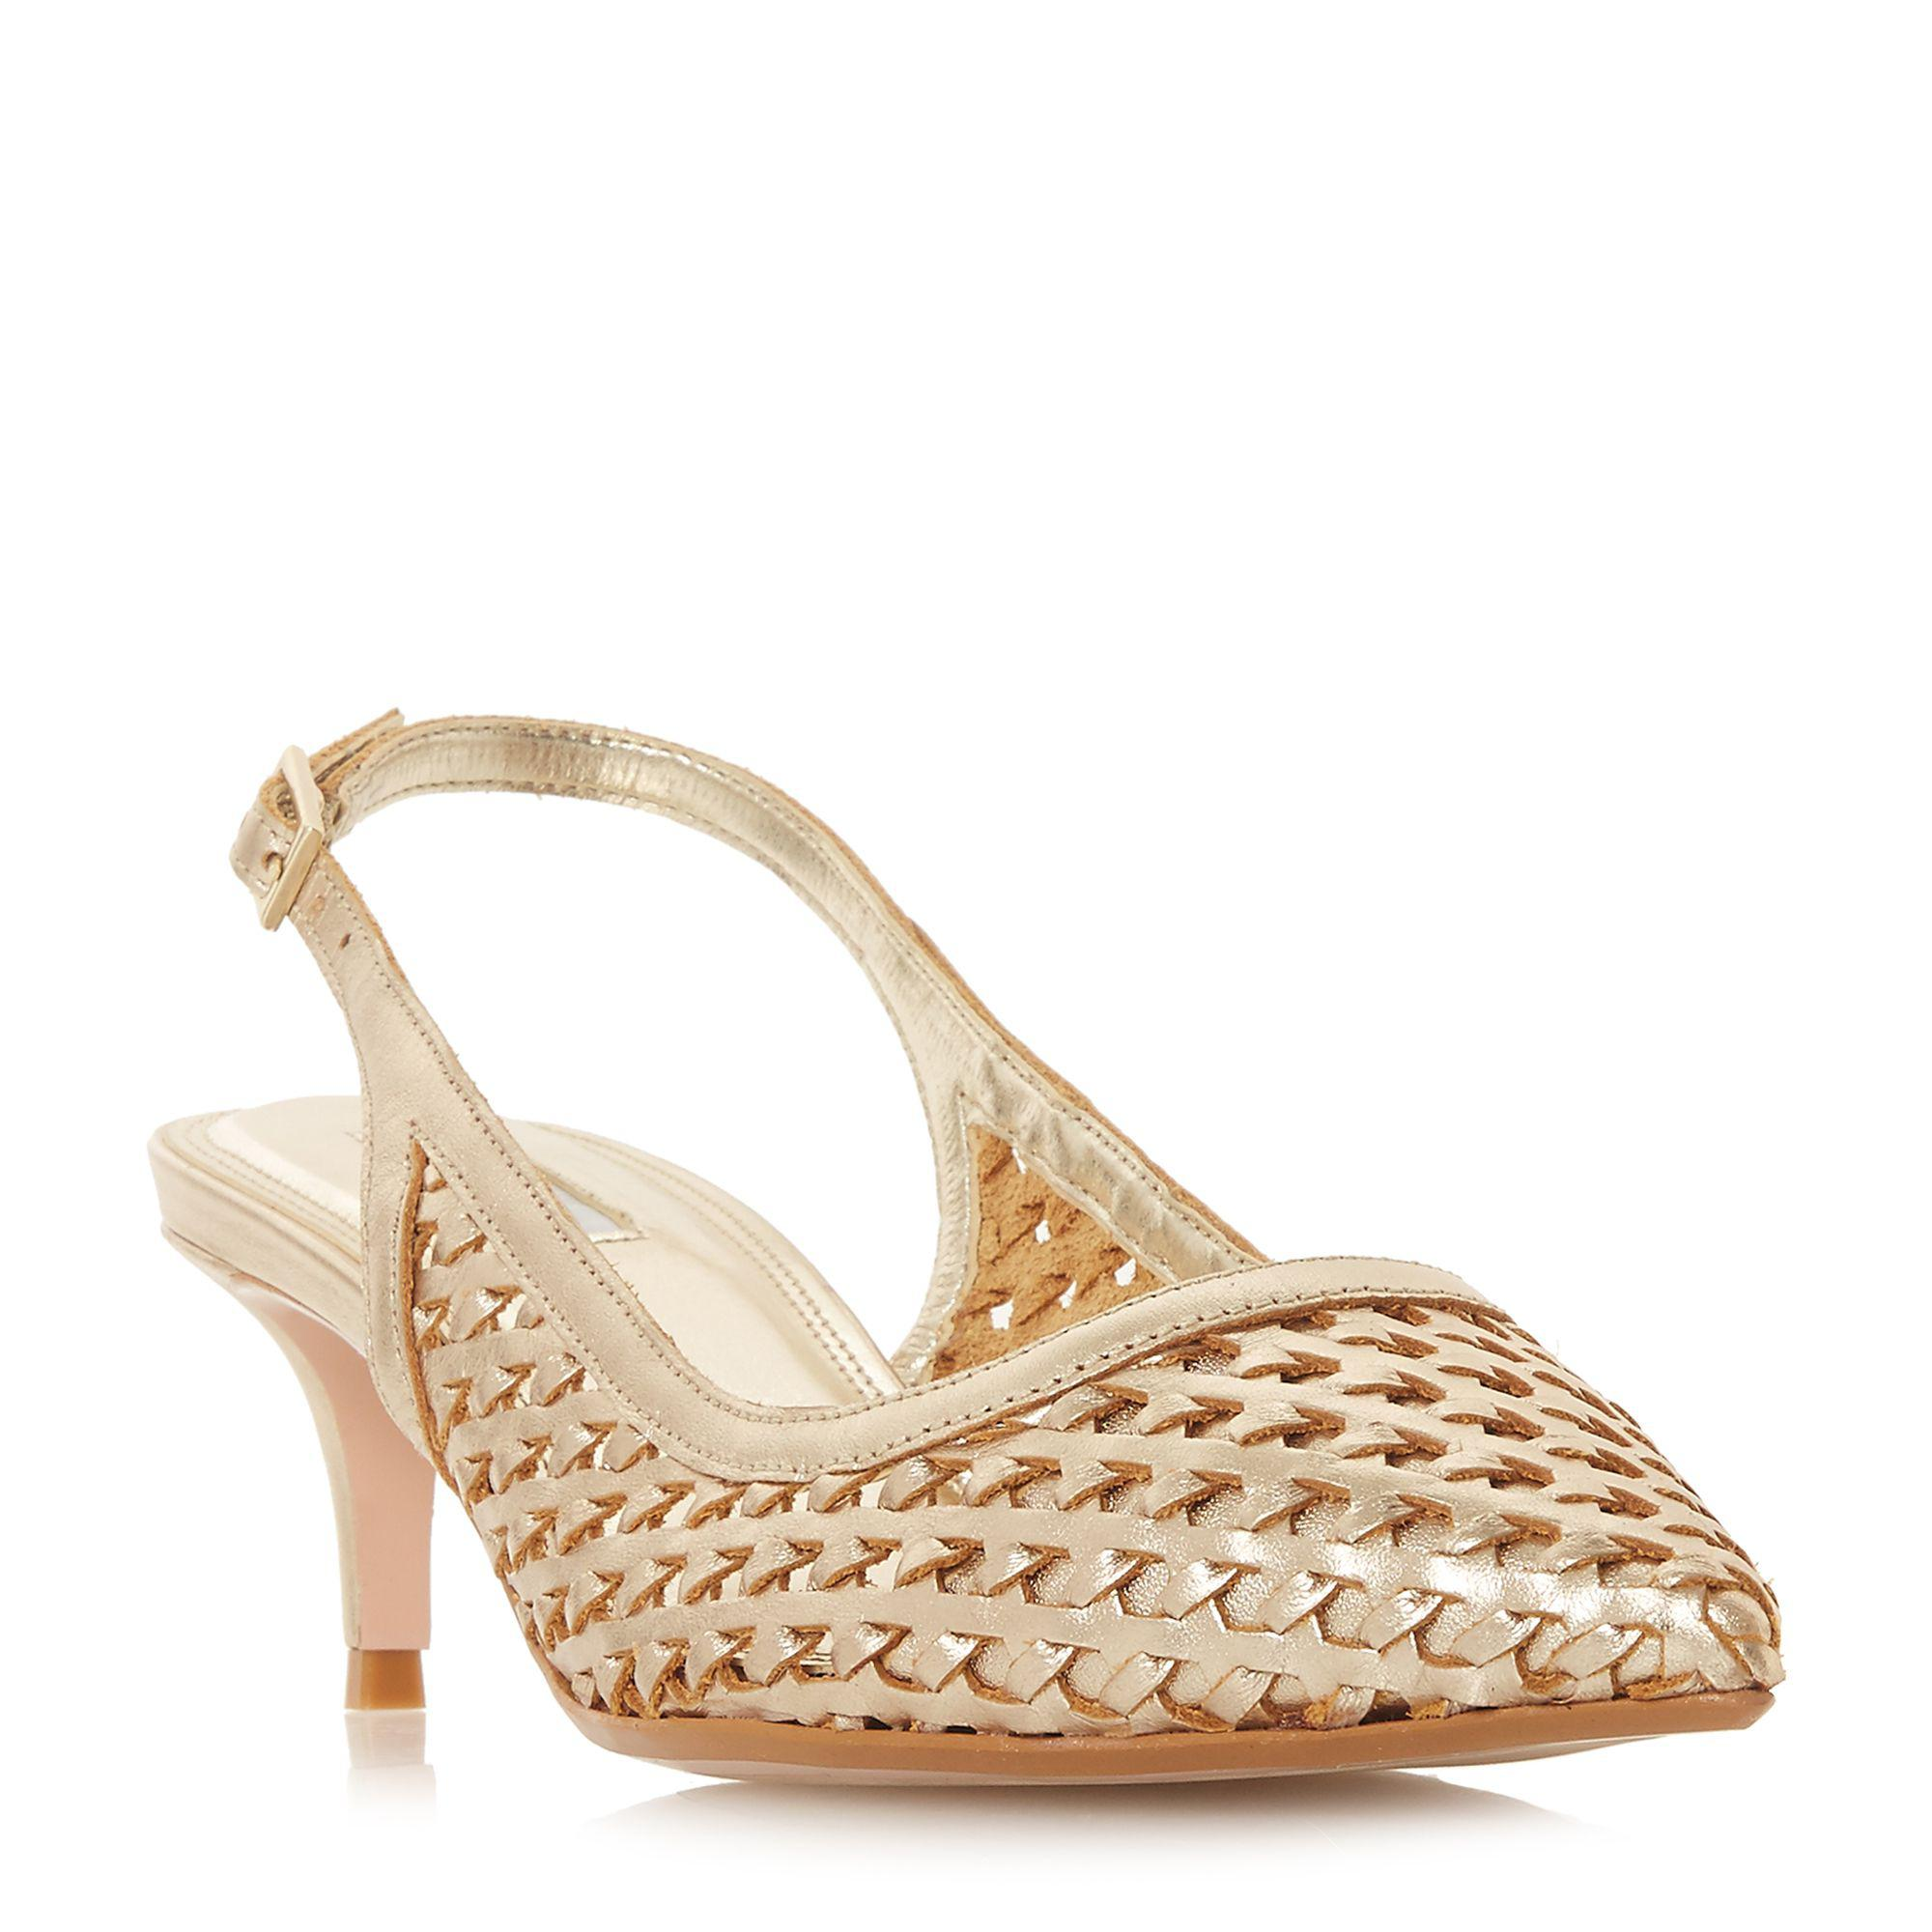 cheap sale many kinds of sale order Pale_blue 'Crystal' mid kitten heel court shoes clearance hot sale 100% guaranteed cheap price xIXVIAOzSX